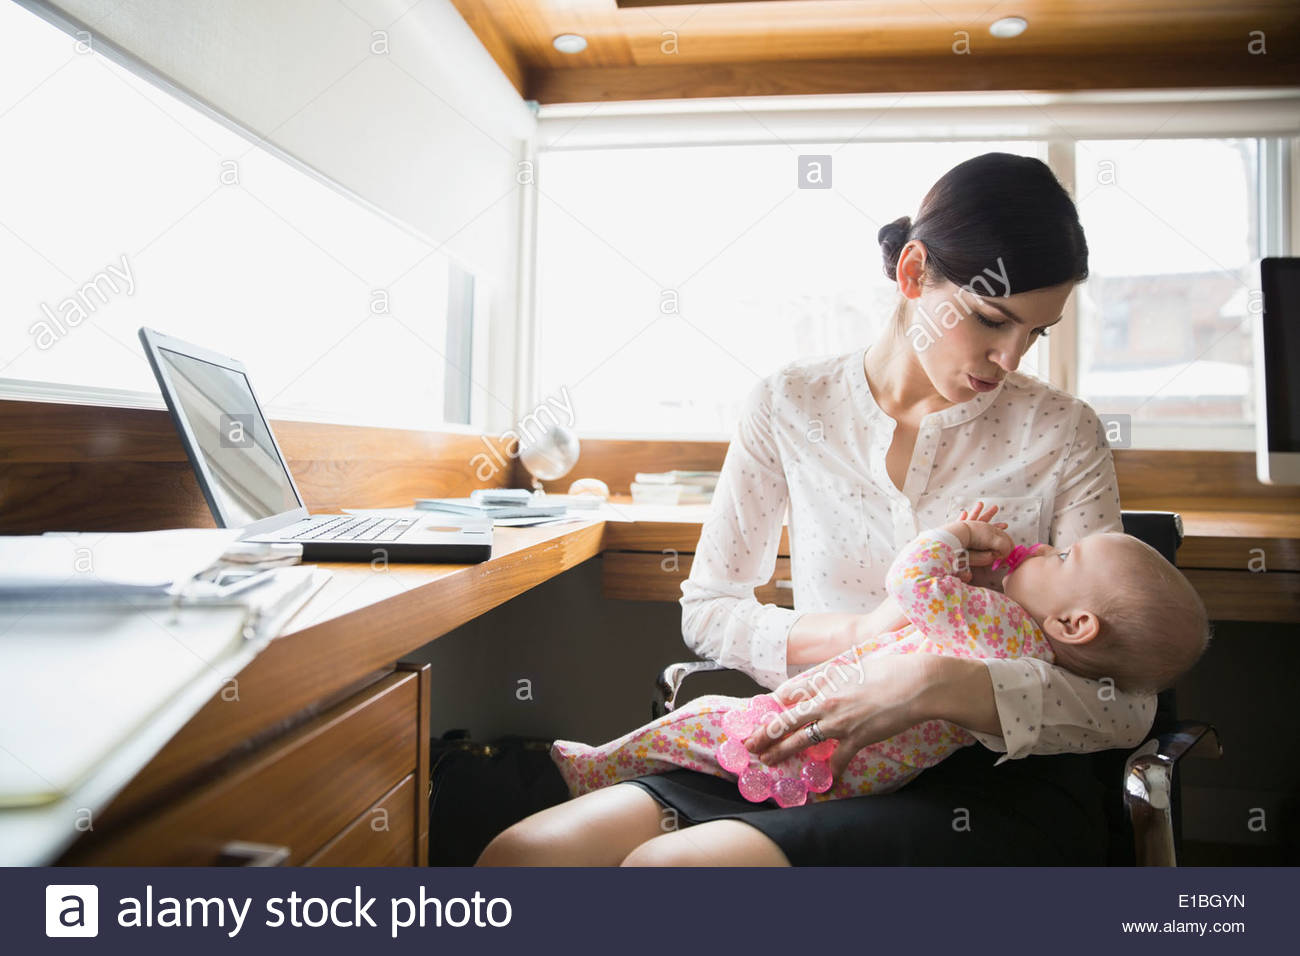 Mother holding baby in home office - Stock Image